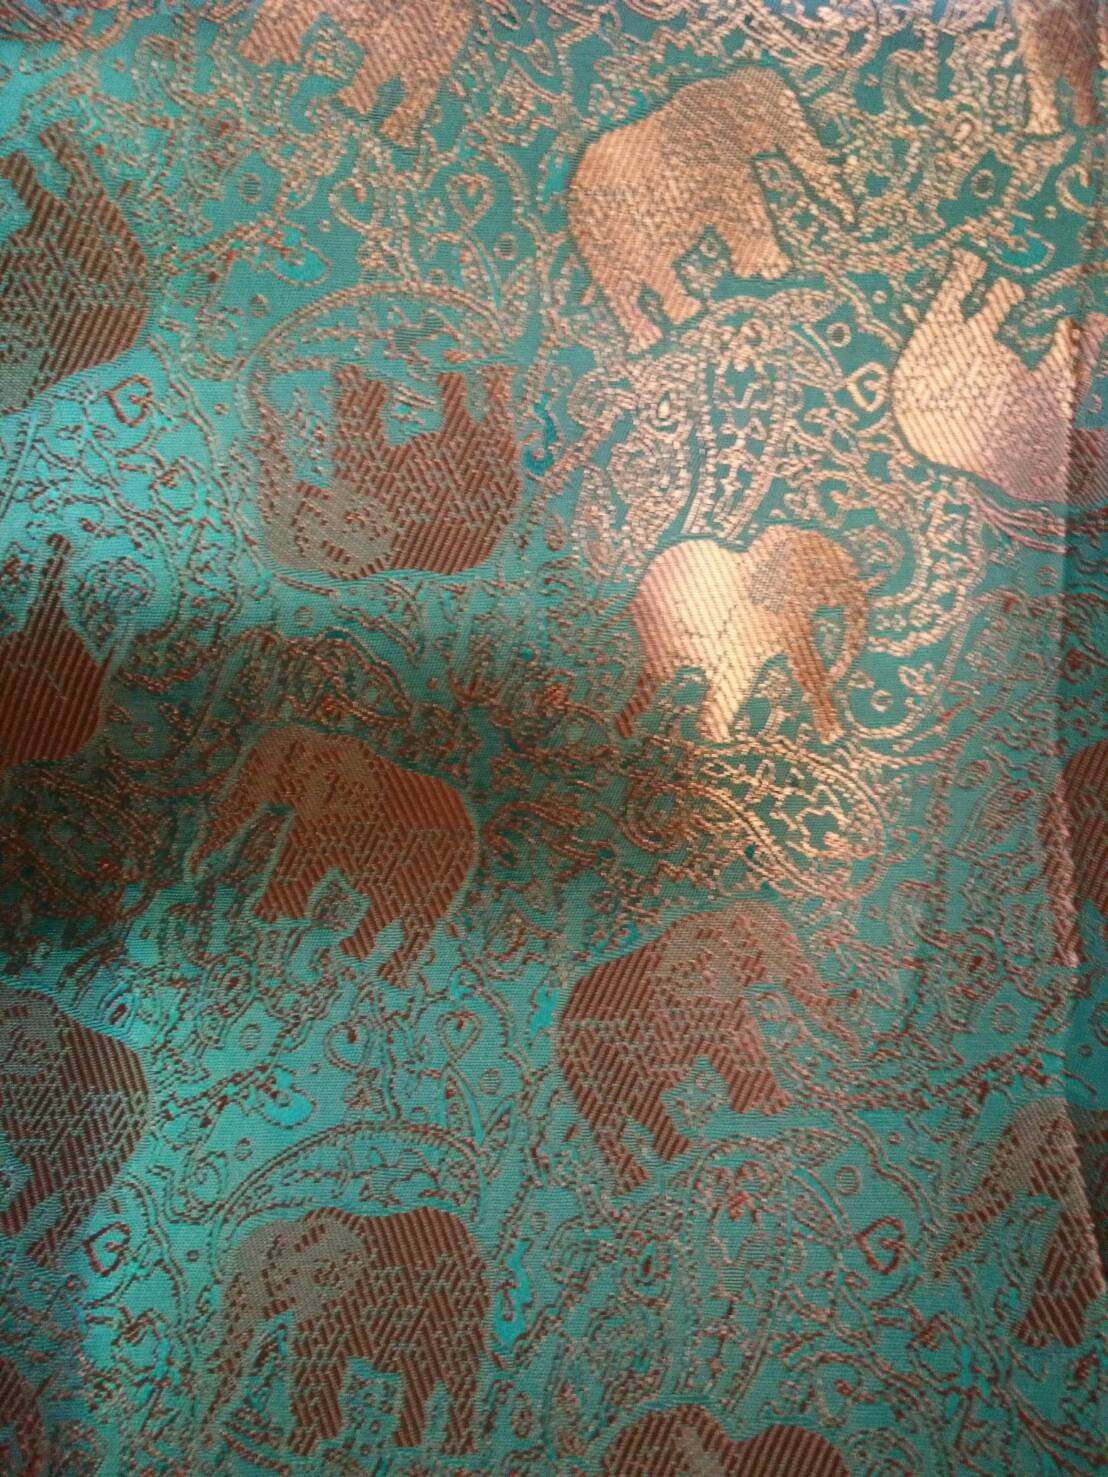 New 100% Thai Silk Scarf Shawl Wrap Elephant Orange Sea Green Chartreuse 74'' X 27.5'' Large by Timeshop91